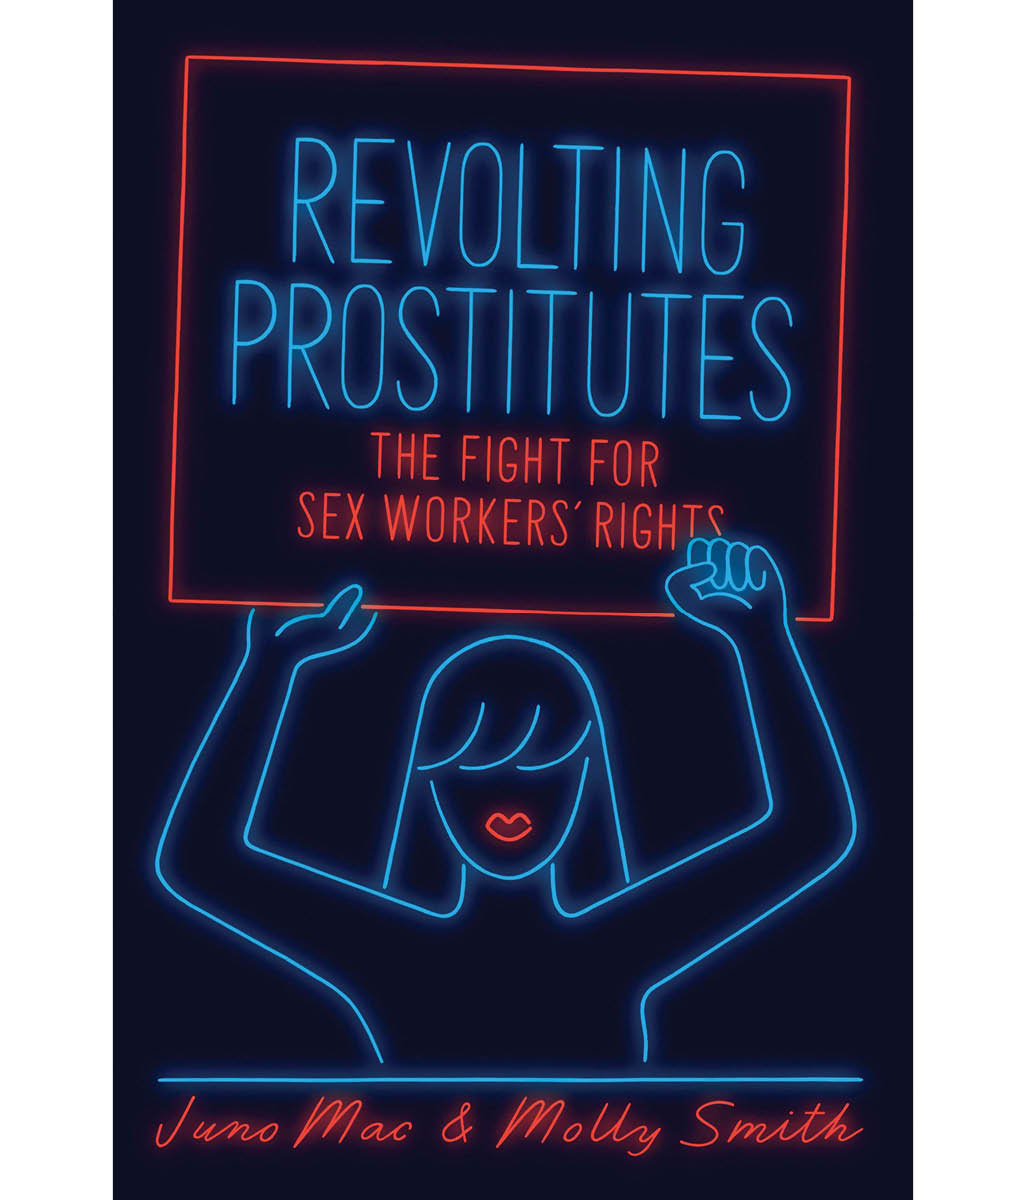 Revolting Prostitutes: The Fight for Sex Workers Rights Molly Smith, Juno Mac